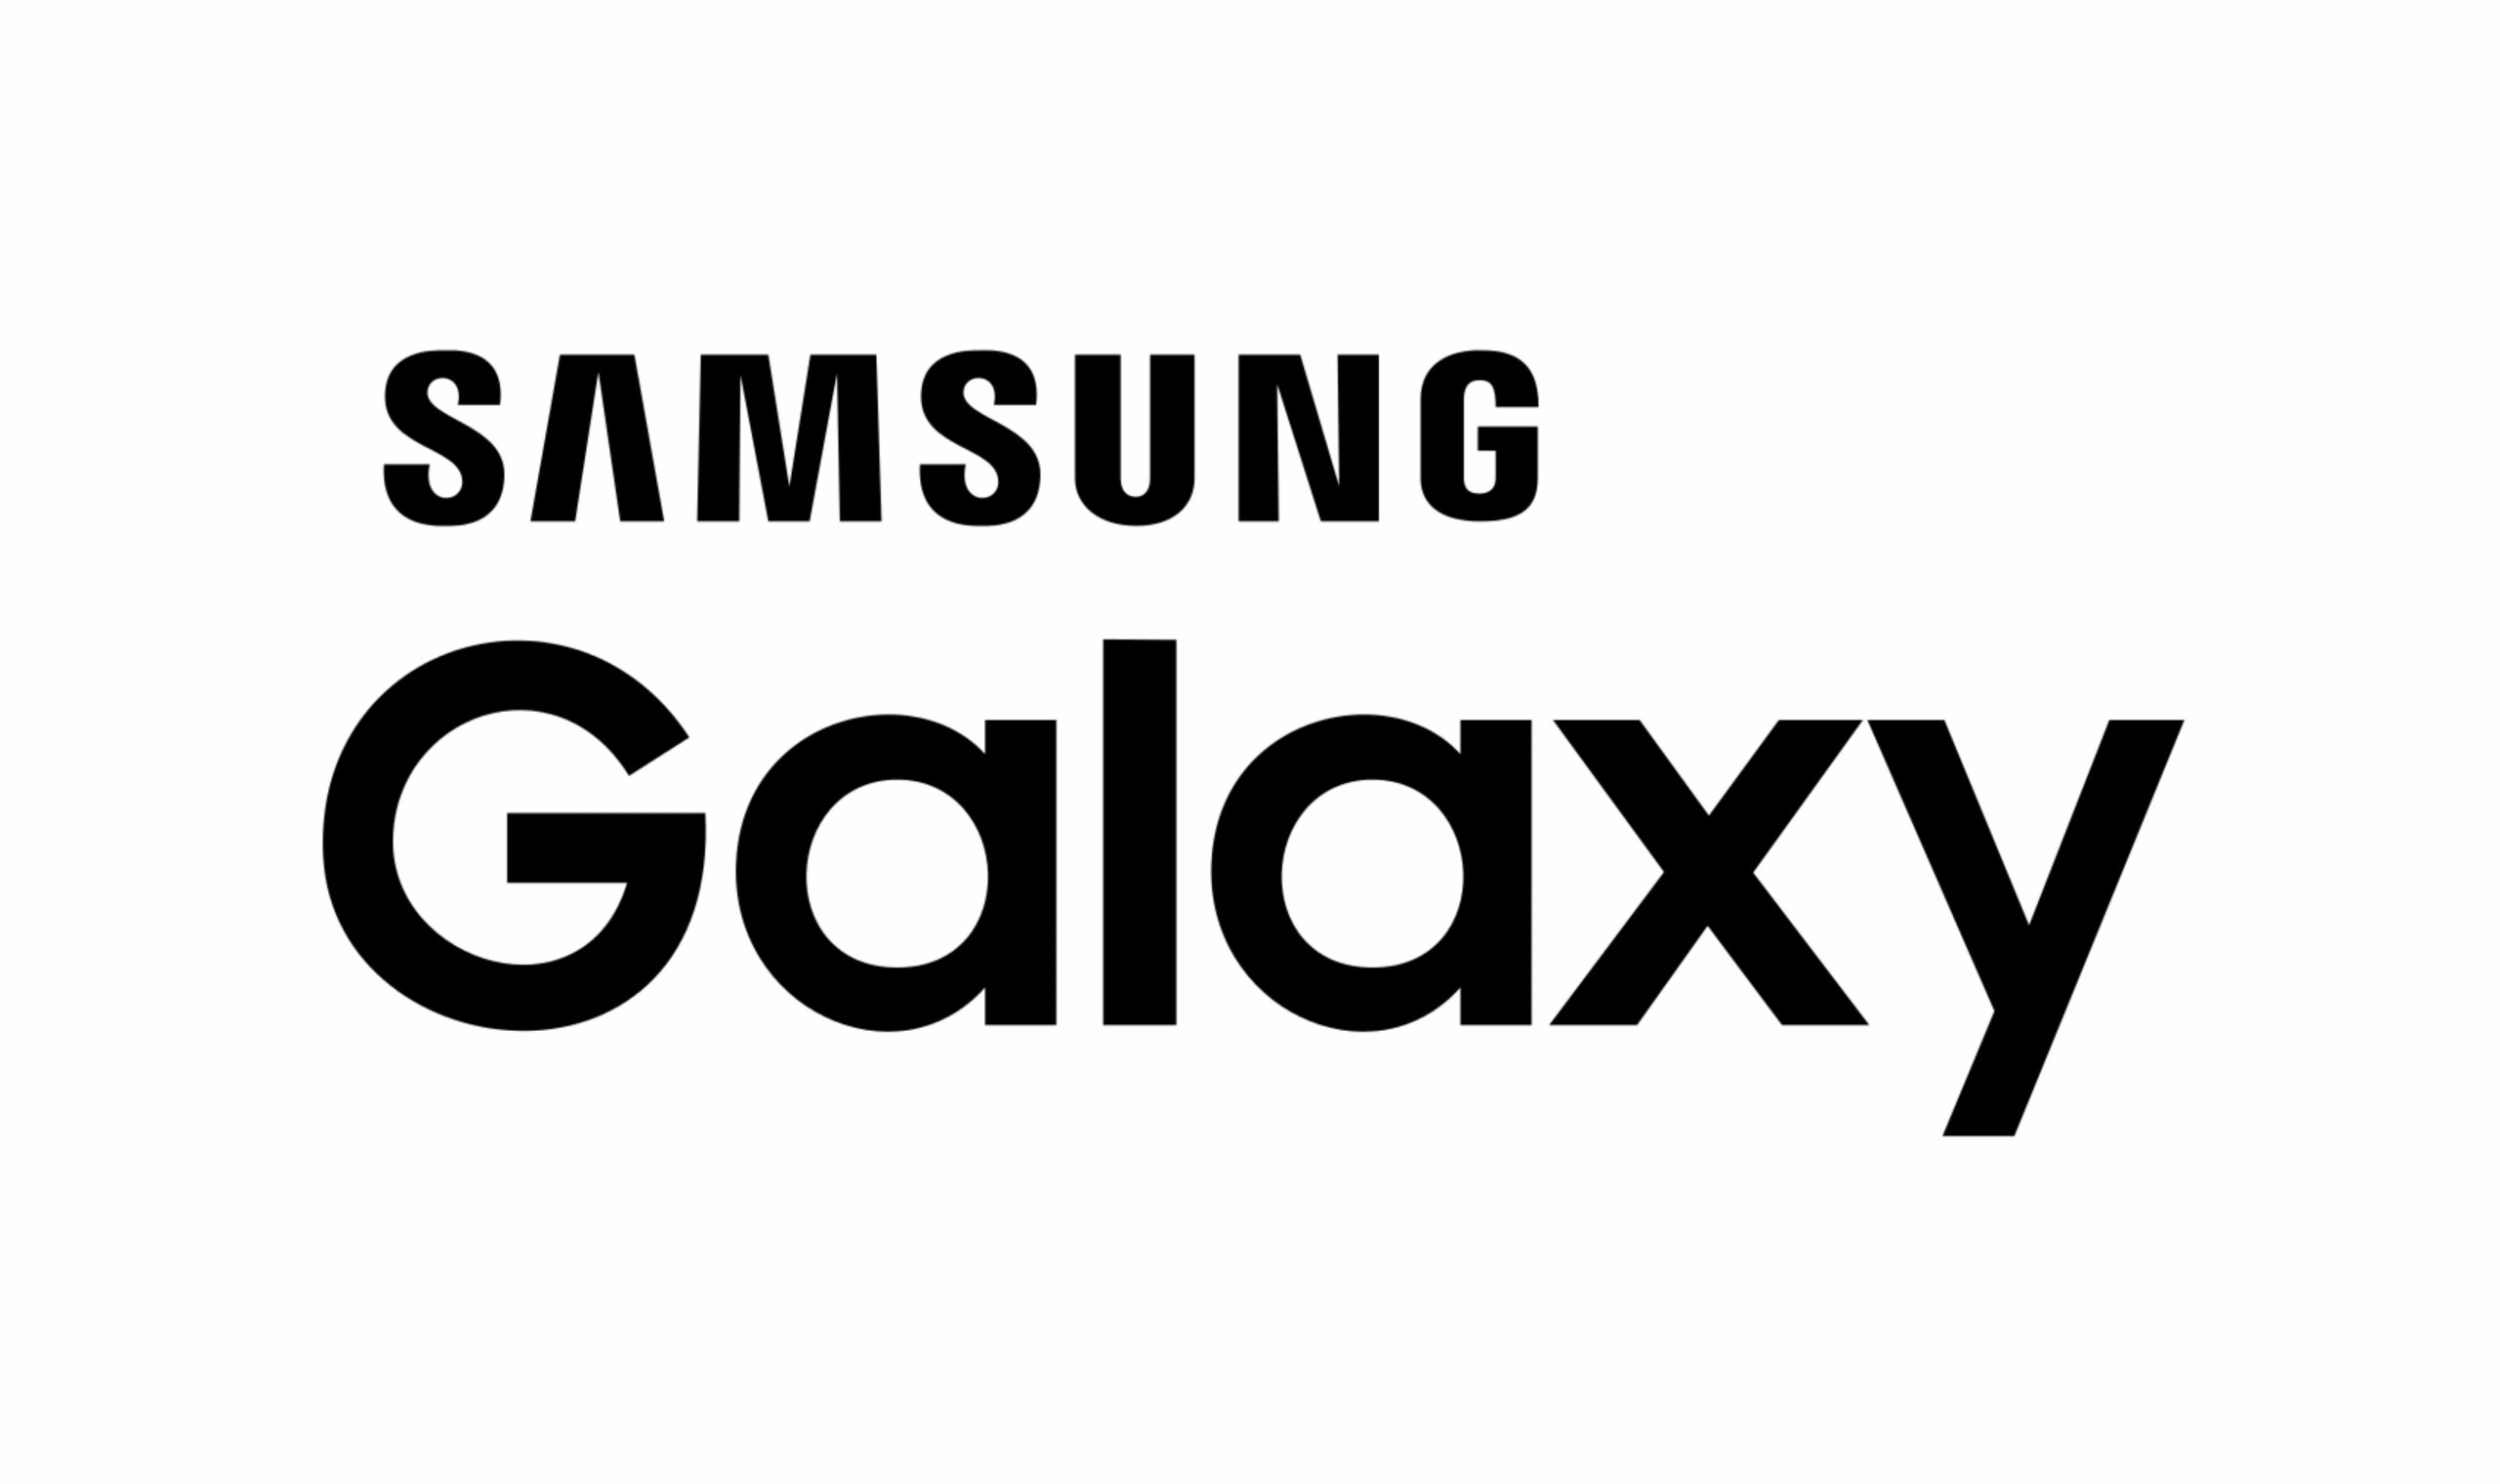 Here's the official list of Samsung Galaxy devices eligible for three generations of Android updates